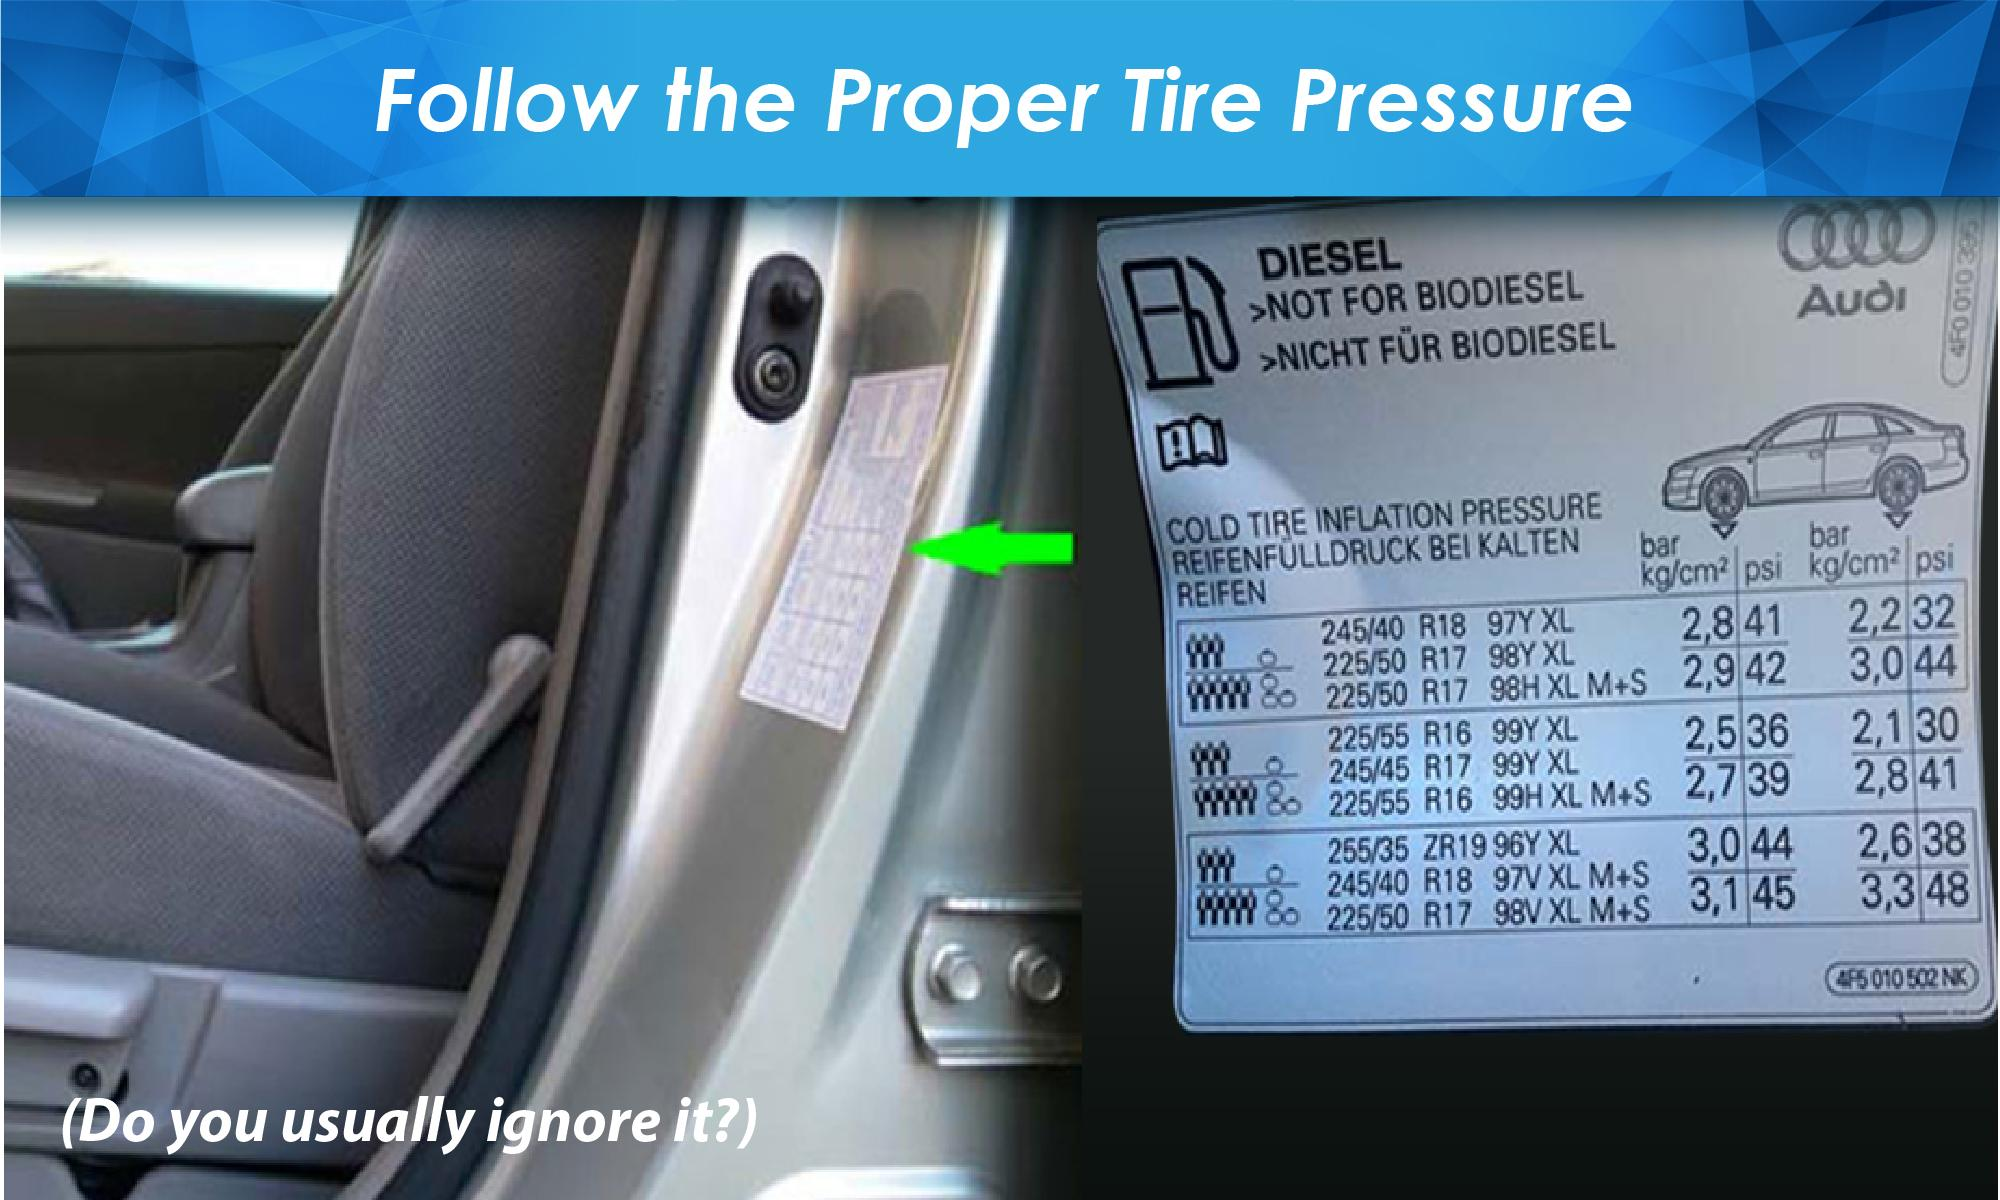 It will provide you very useful information about the tire like the recommended tire size and the proper tire pressure whether driving with heavy loads or ... & How to know the Proper Tire Pressure